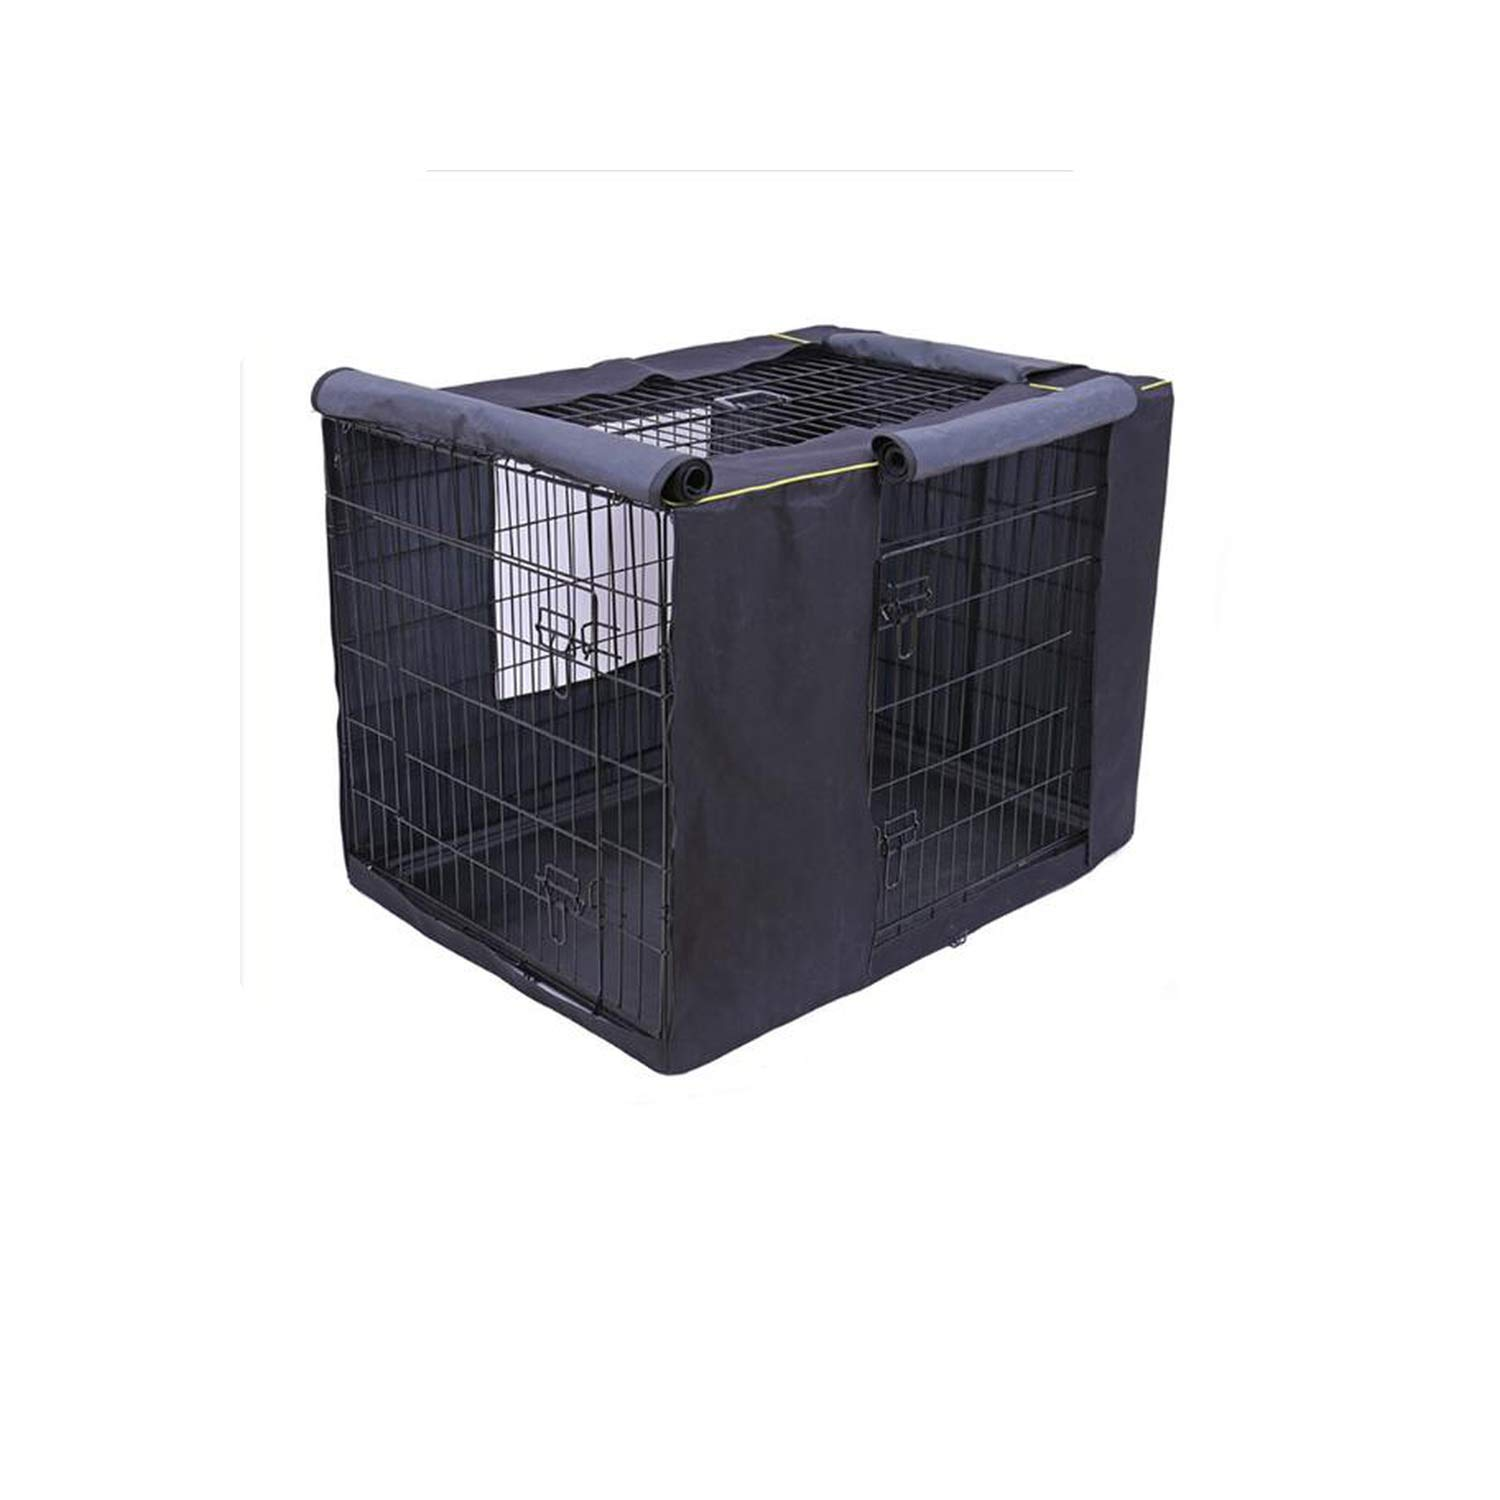 UwiC Pet Dog Cages Cover Waterproof Non-Slip Solid Extra Kennel Cage Cover for Medium Large Dogs 3 Sizes Travel Training Dog Products,Black,L